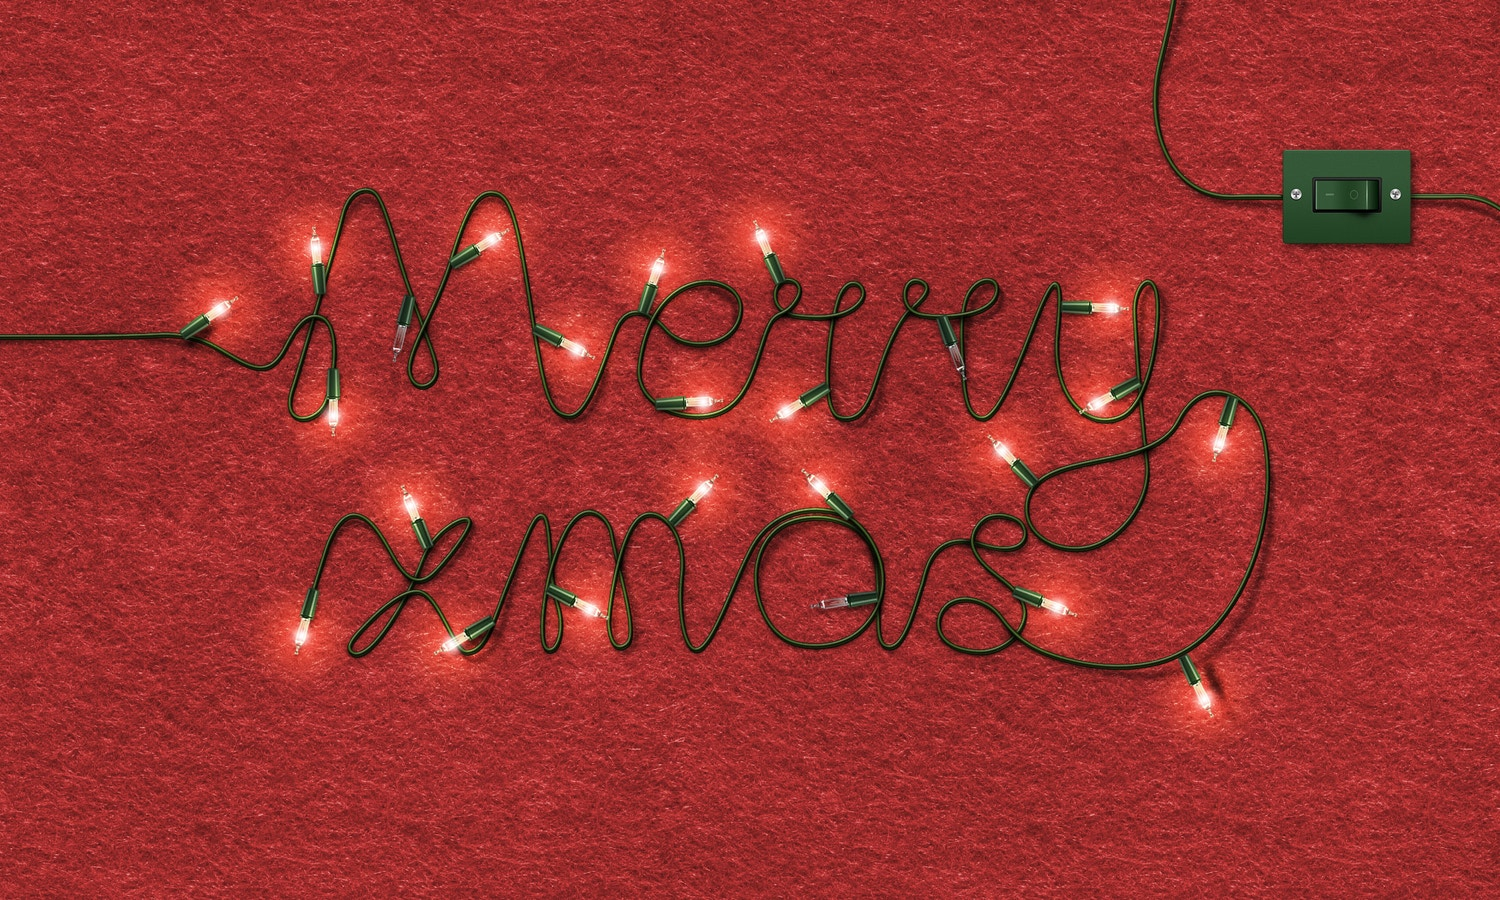 Merry Xmas Lights by Original Mockups on Original Mockups